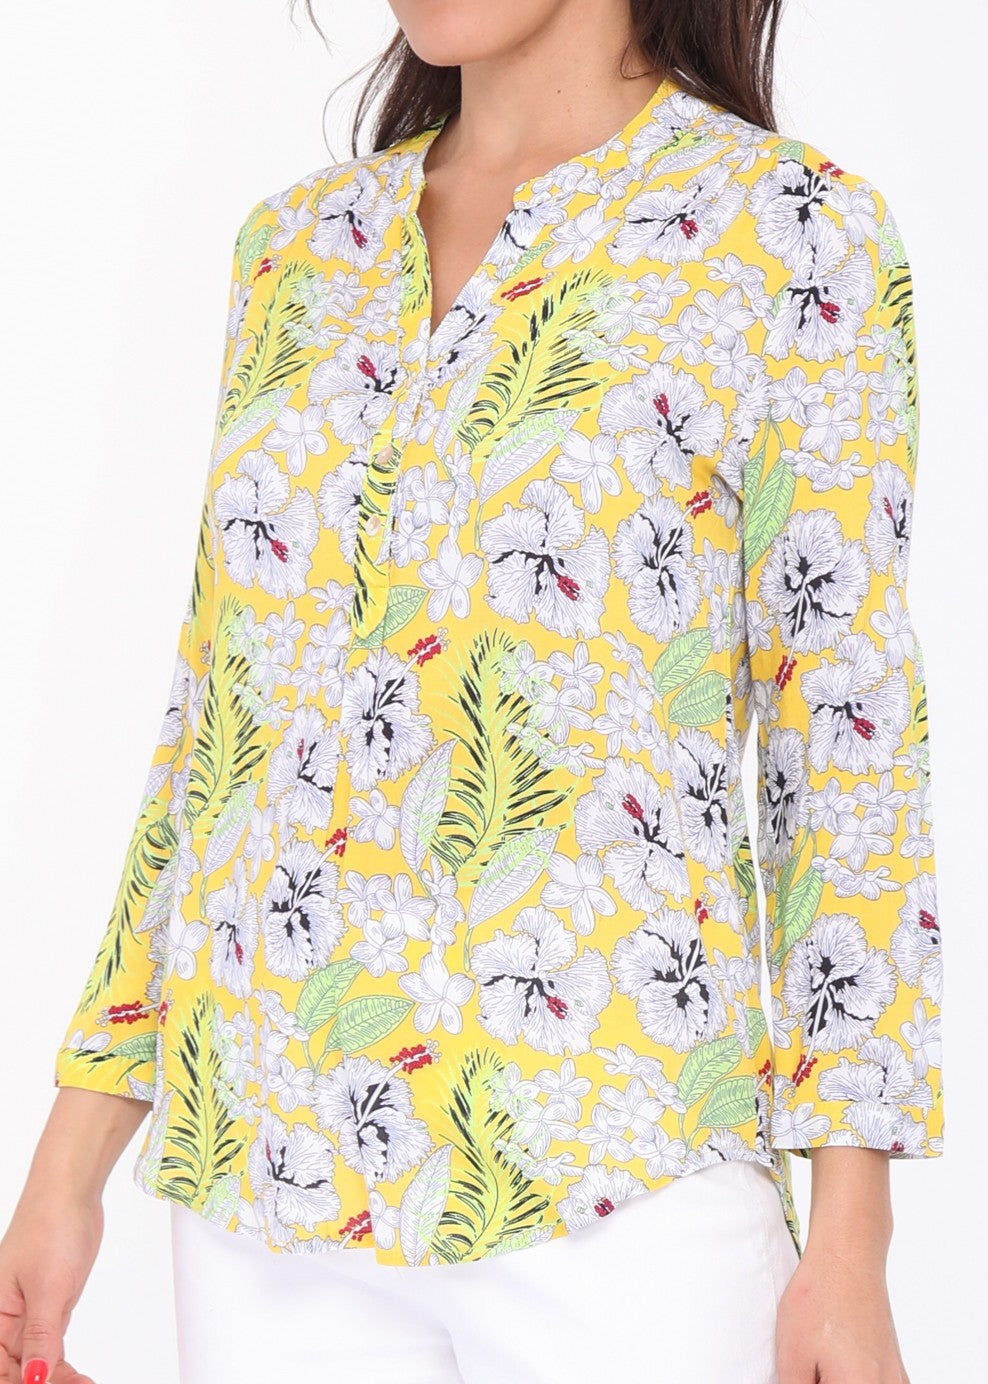 Laurene - Floral Patterned Blouse - Yellow